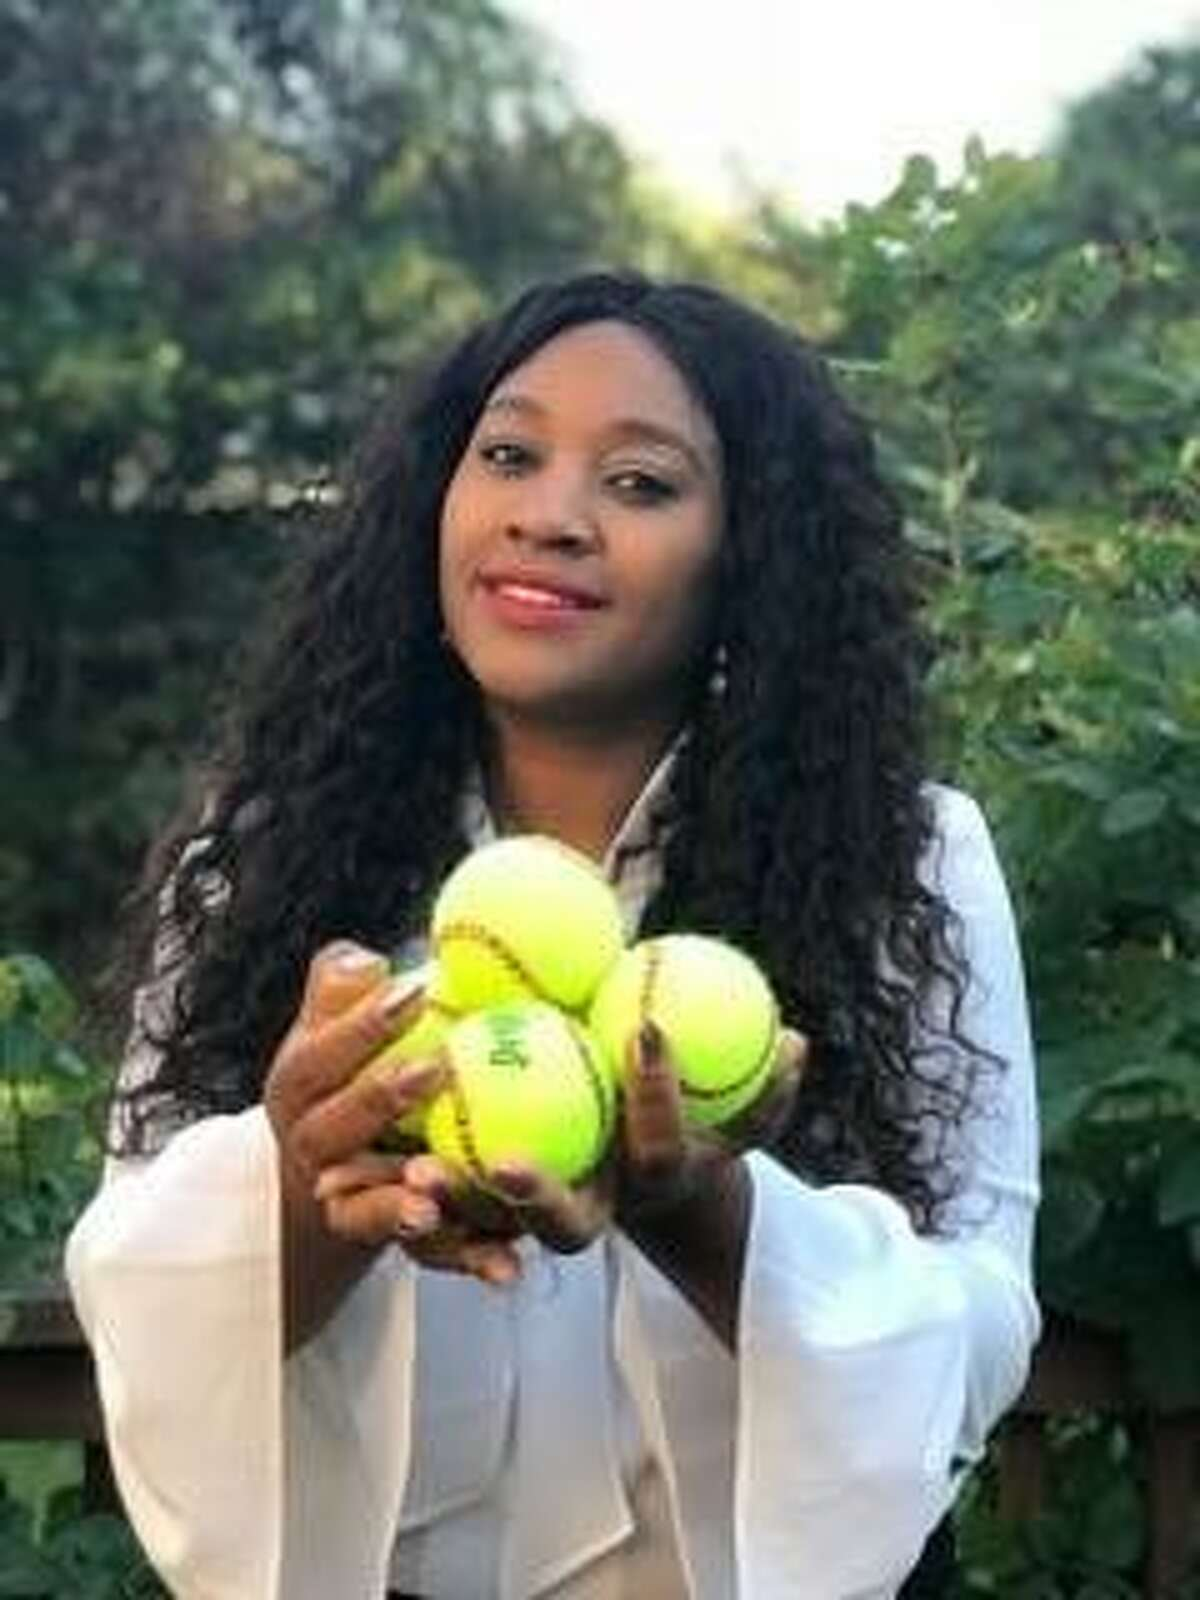 """Tanisha Akinloye, founder and CEO of non-profit """"Empowering Through Beauty Foundation"""" began teaching a program about love, service and respect at Stamford High School in Stamford, Conn. on Oct. 2, 2018."""